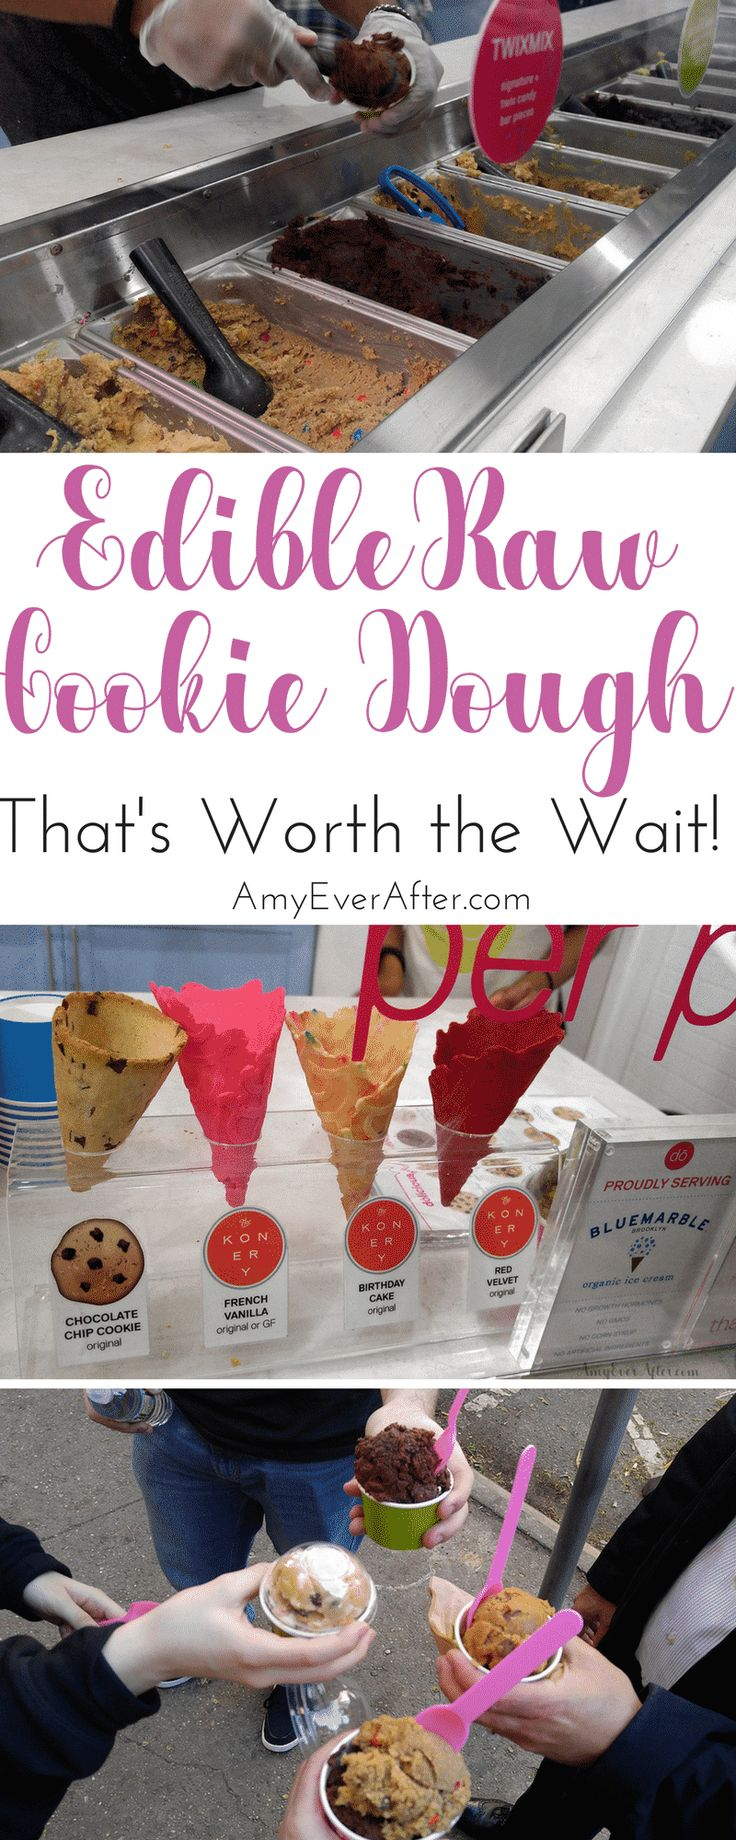 Edible raw cookie dough thats worth the wait new york